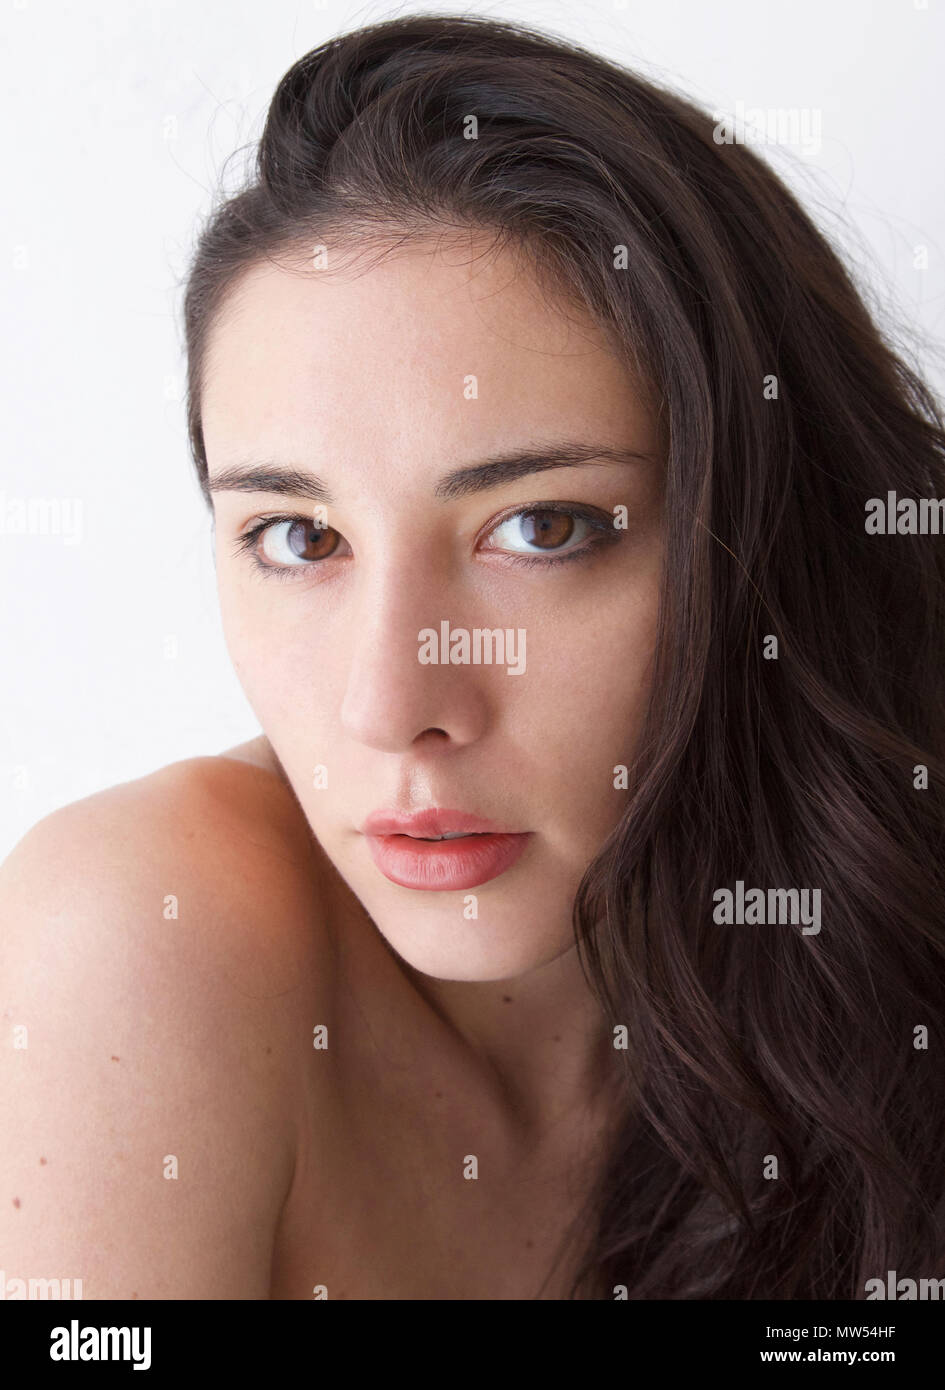 Italian Woman with brown hair and eyes and full red lips - Stock Image